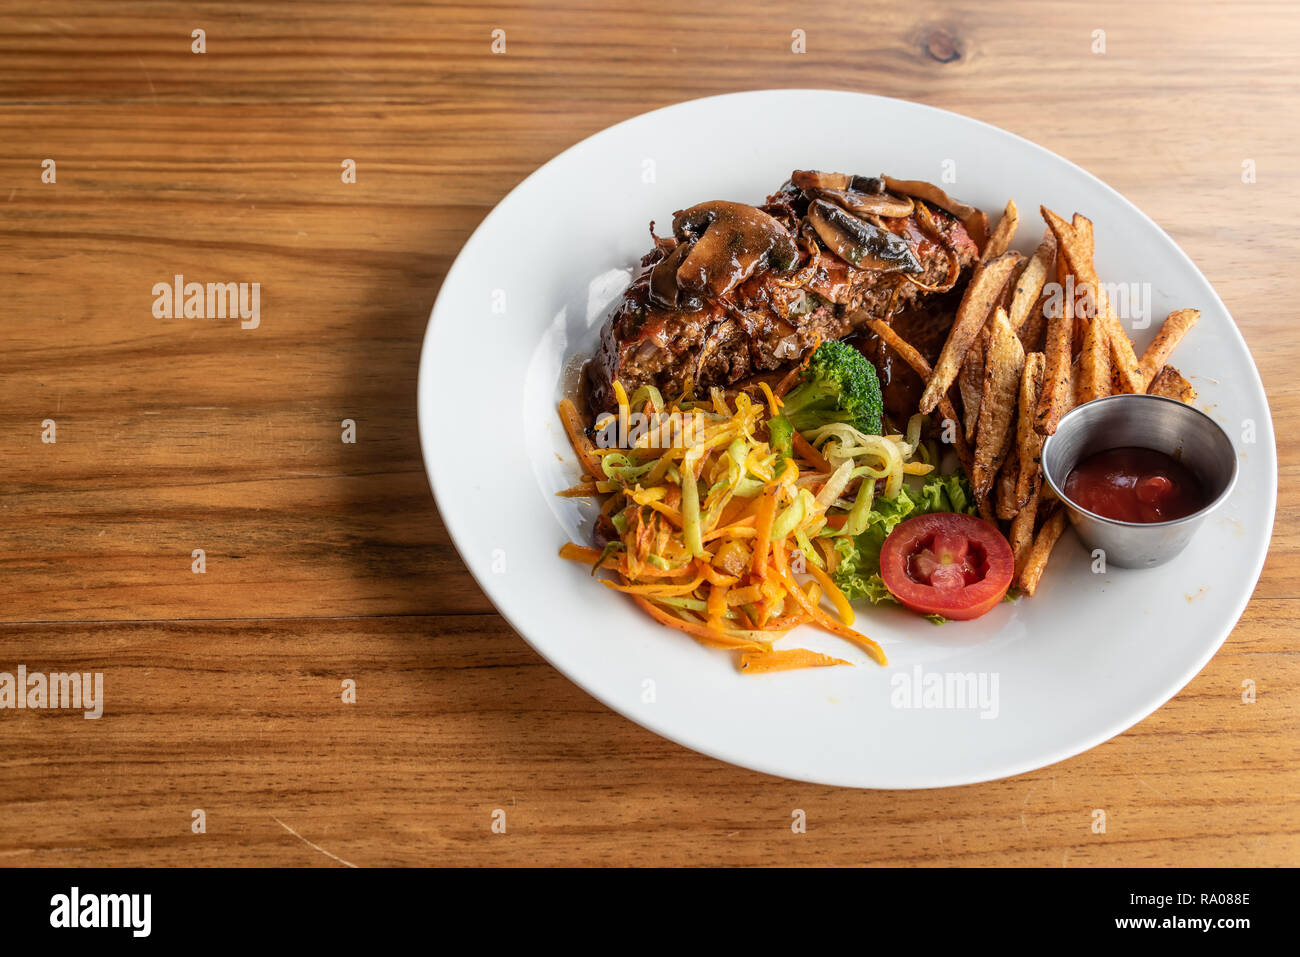 Gourmet Meatloaf with Wine Gravy, Vegetables and Hand Cut Fried Potatos - Stock Image